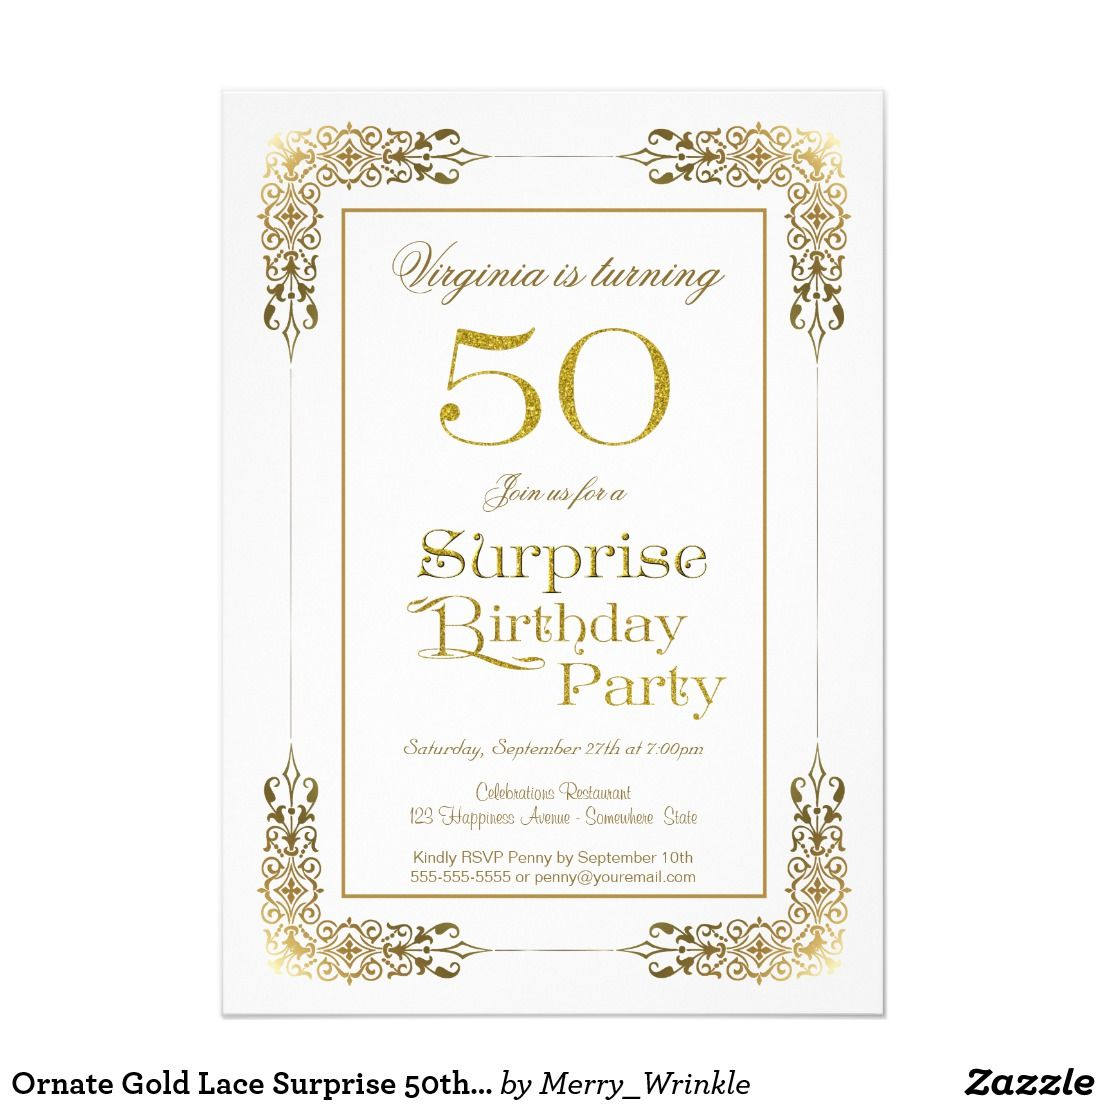 ornate gold lace surprise 50th birthday party invitation in 2018